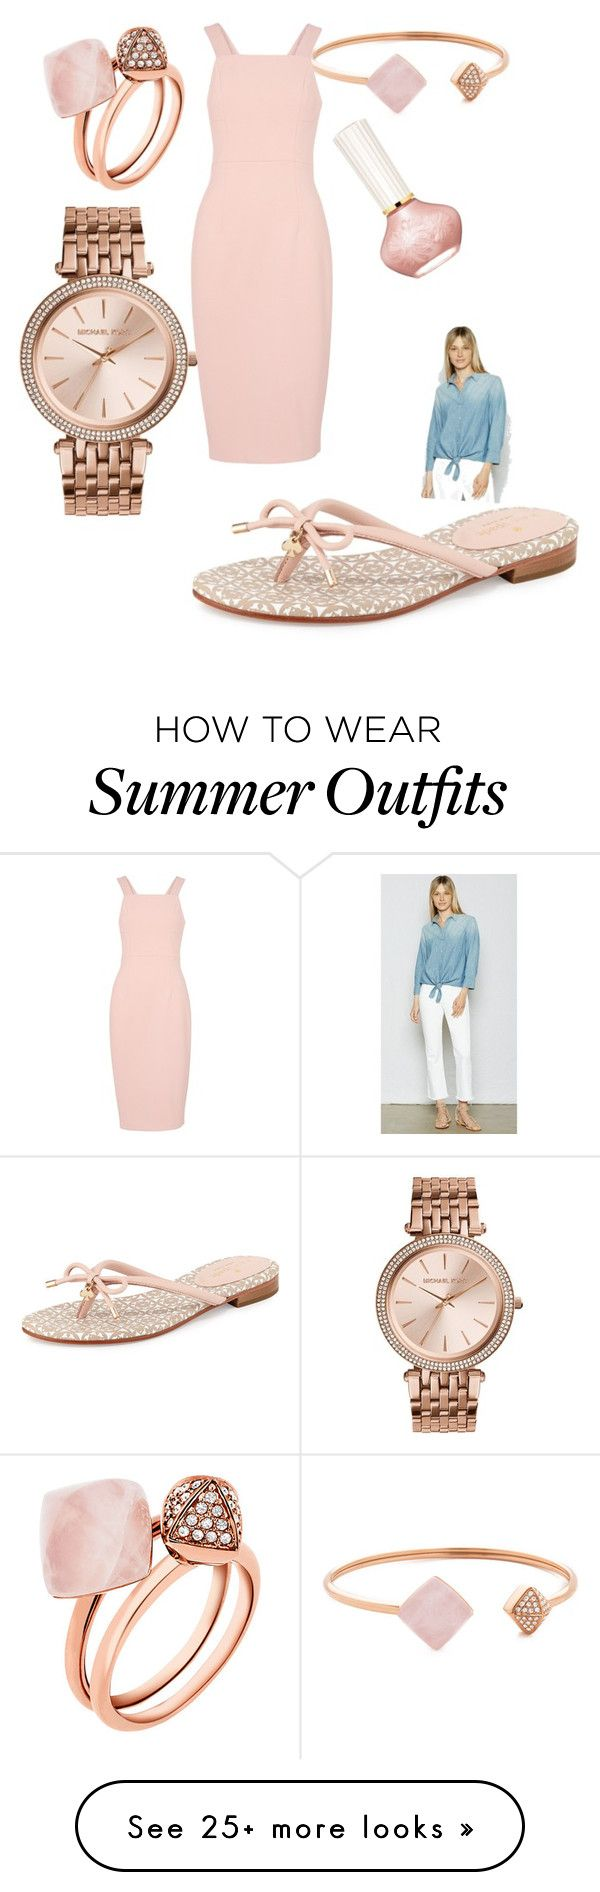 """Summer BBQ Outfit"" by emily-louise-webberley on Polyvore featuring Current/Elliott, Michael Kors, MICHAEL Michael Kors, Paul & Joe Beaute, Kate Spade and Whistles"